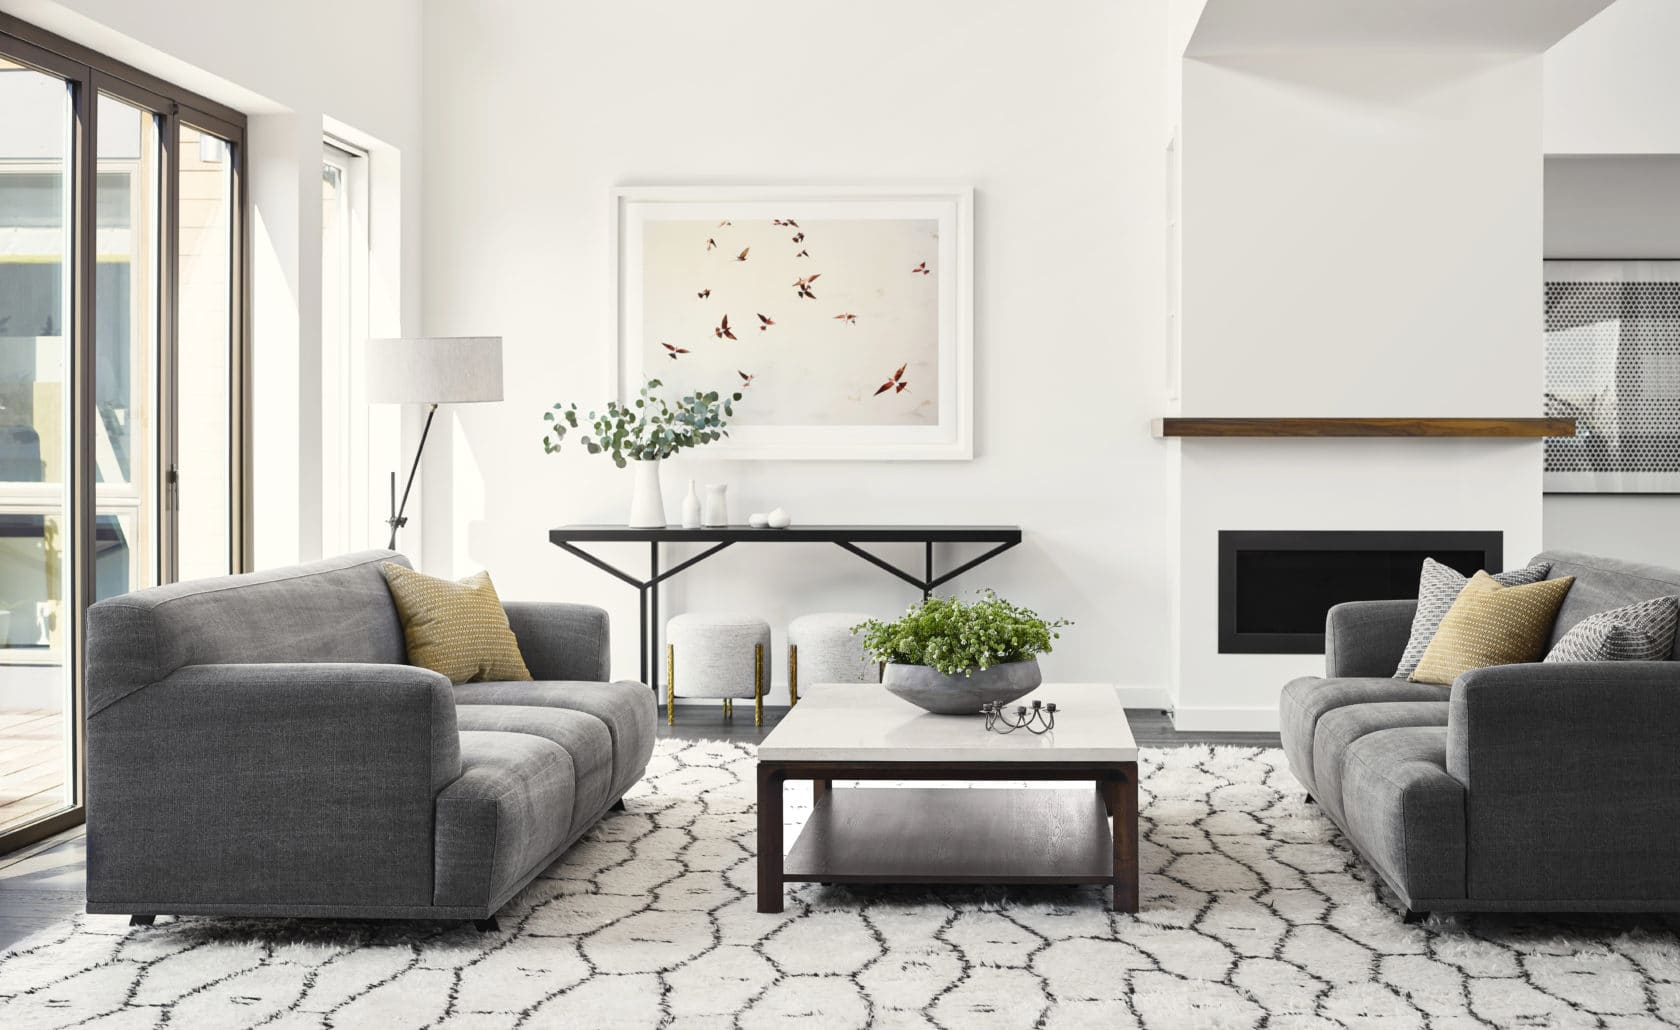 Get inspired by this beautiful living room from Niche Interiors